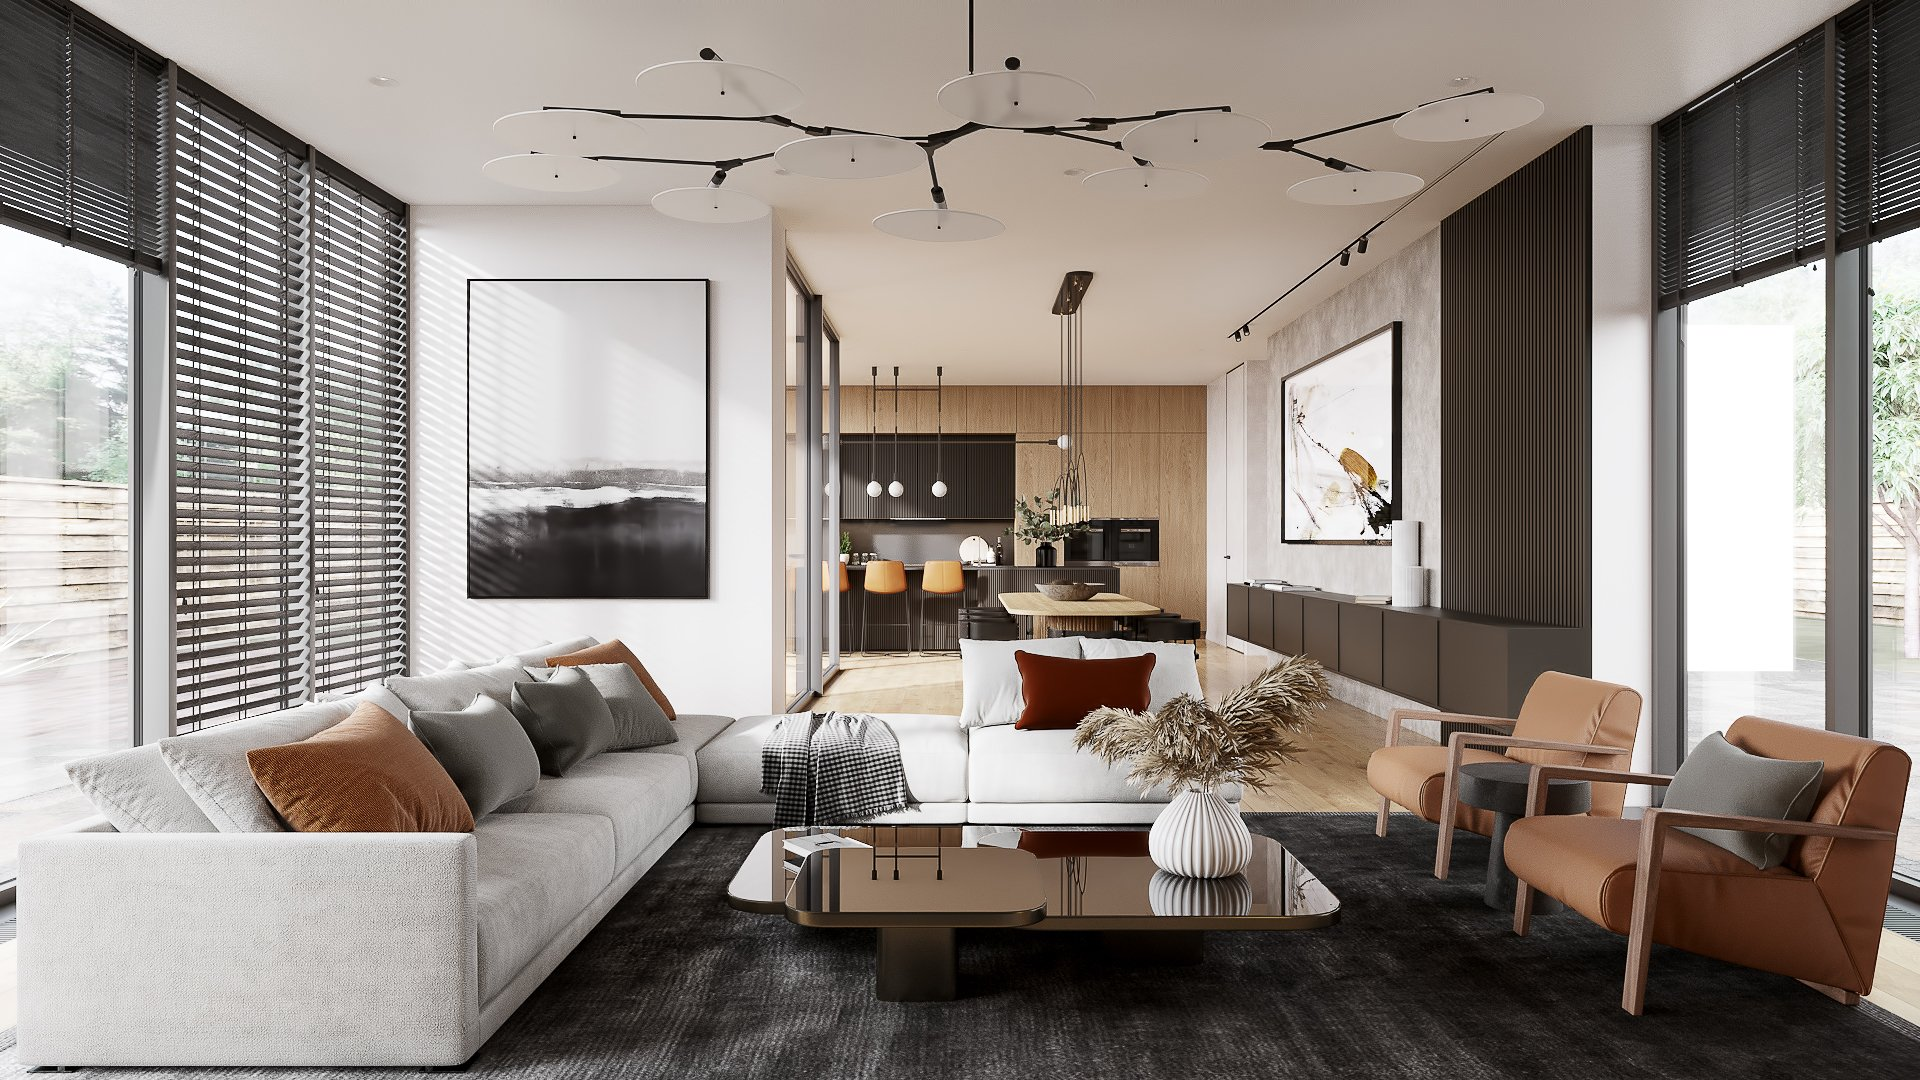 3D Interior Visualization of a Modern Apartment Design